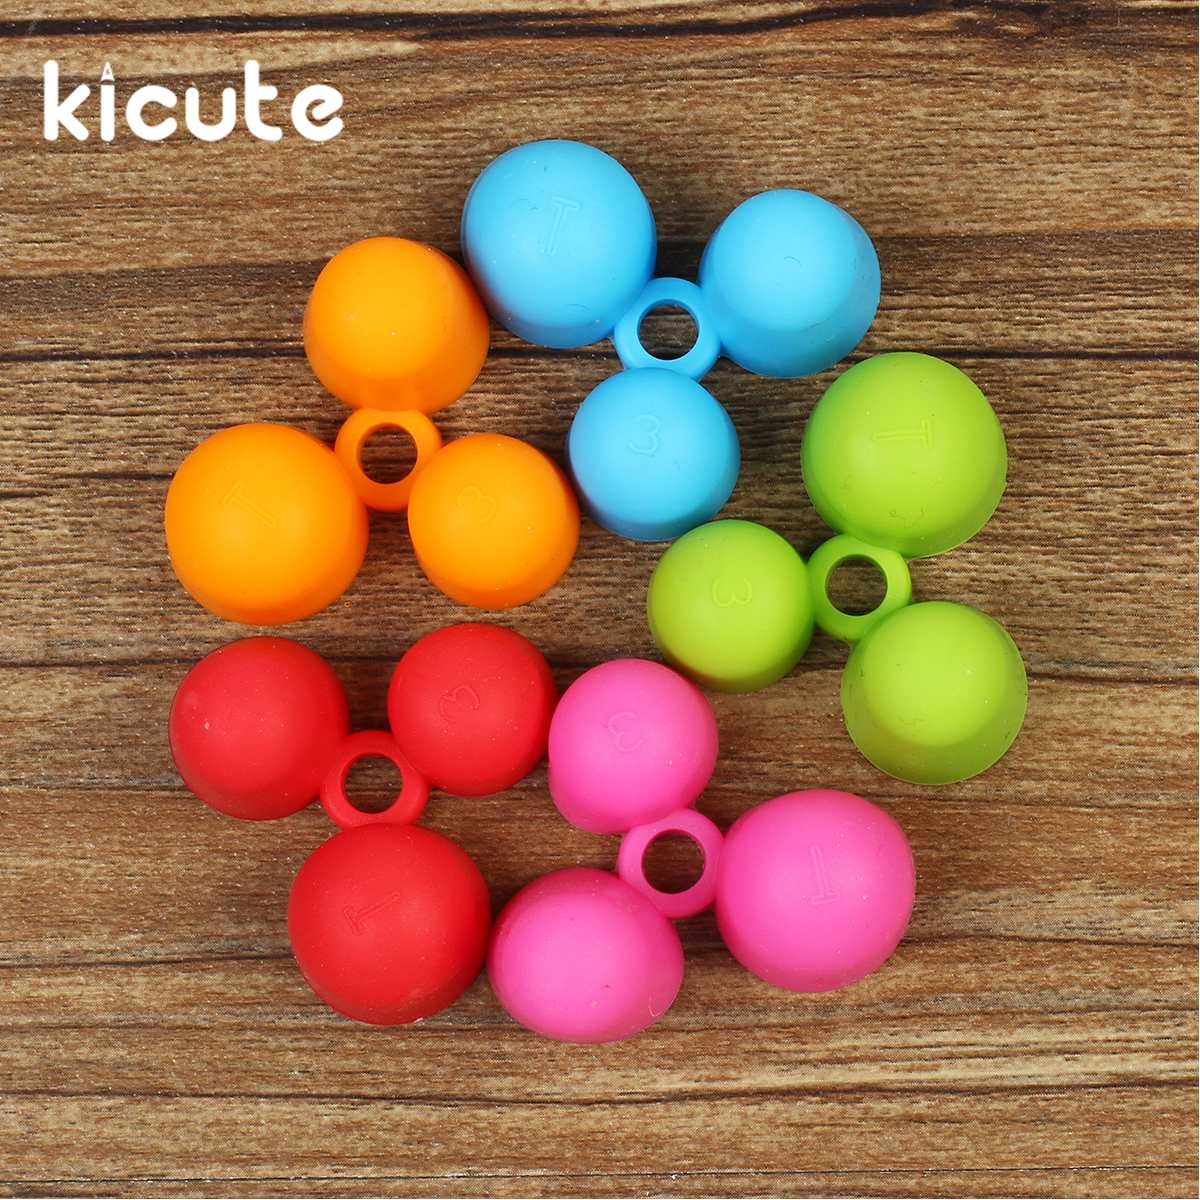 Kicute 5pcs/lot Pencil Grips Occupational Therapy Handwriting Aid Students School Stationery Pen Control Right Silicone Writing